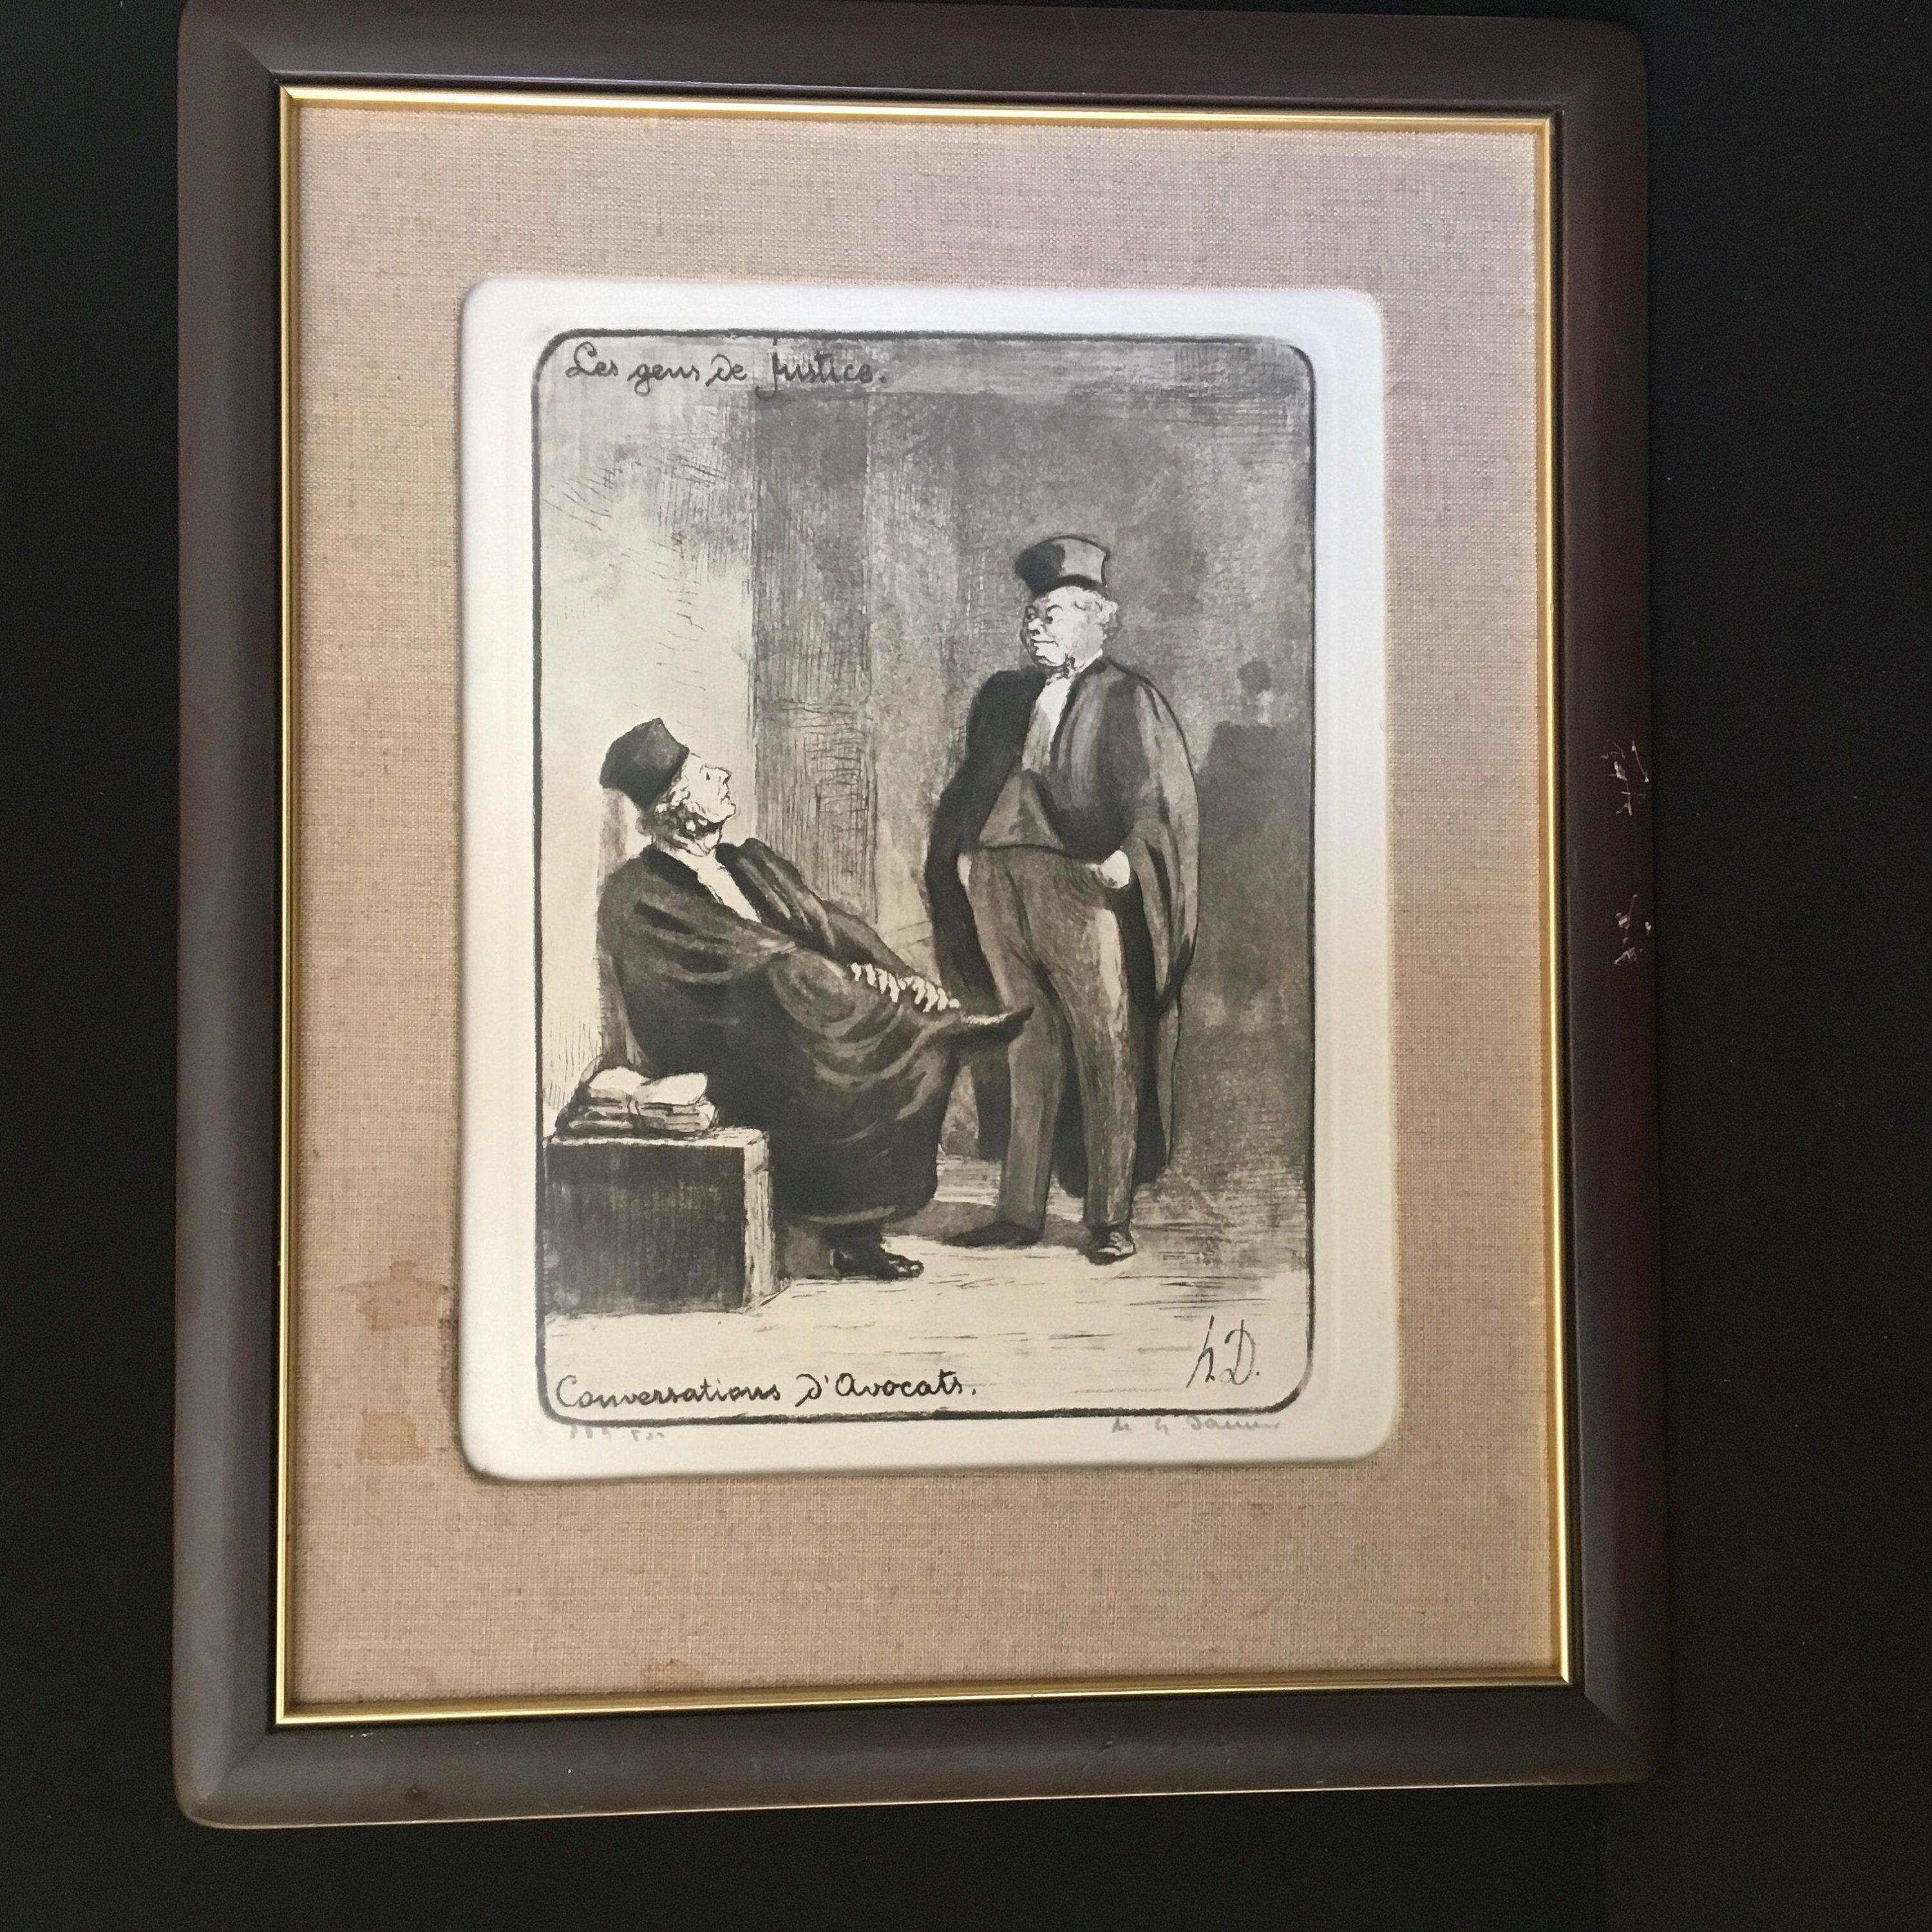 Honore Daumier France 1808 -1879 Lithograph A Respected